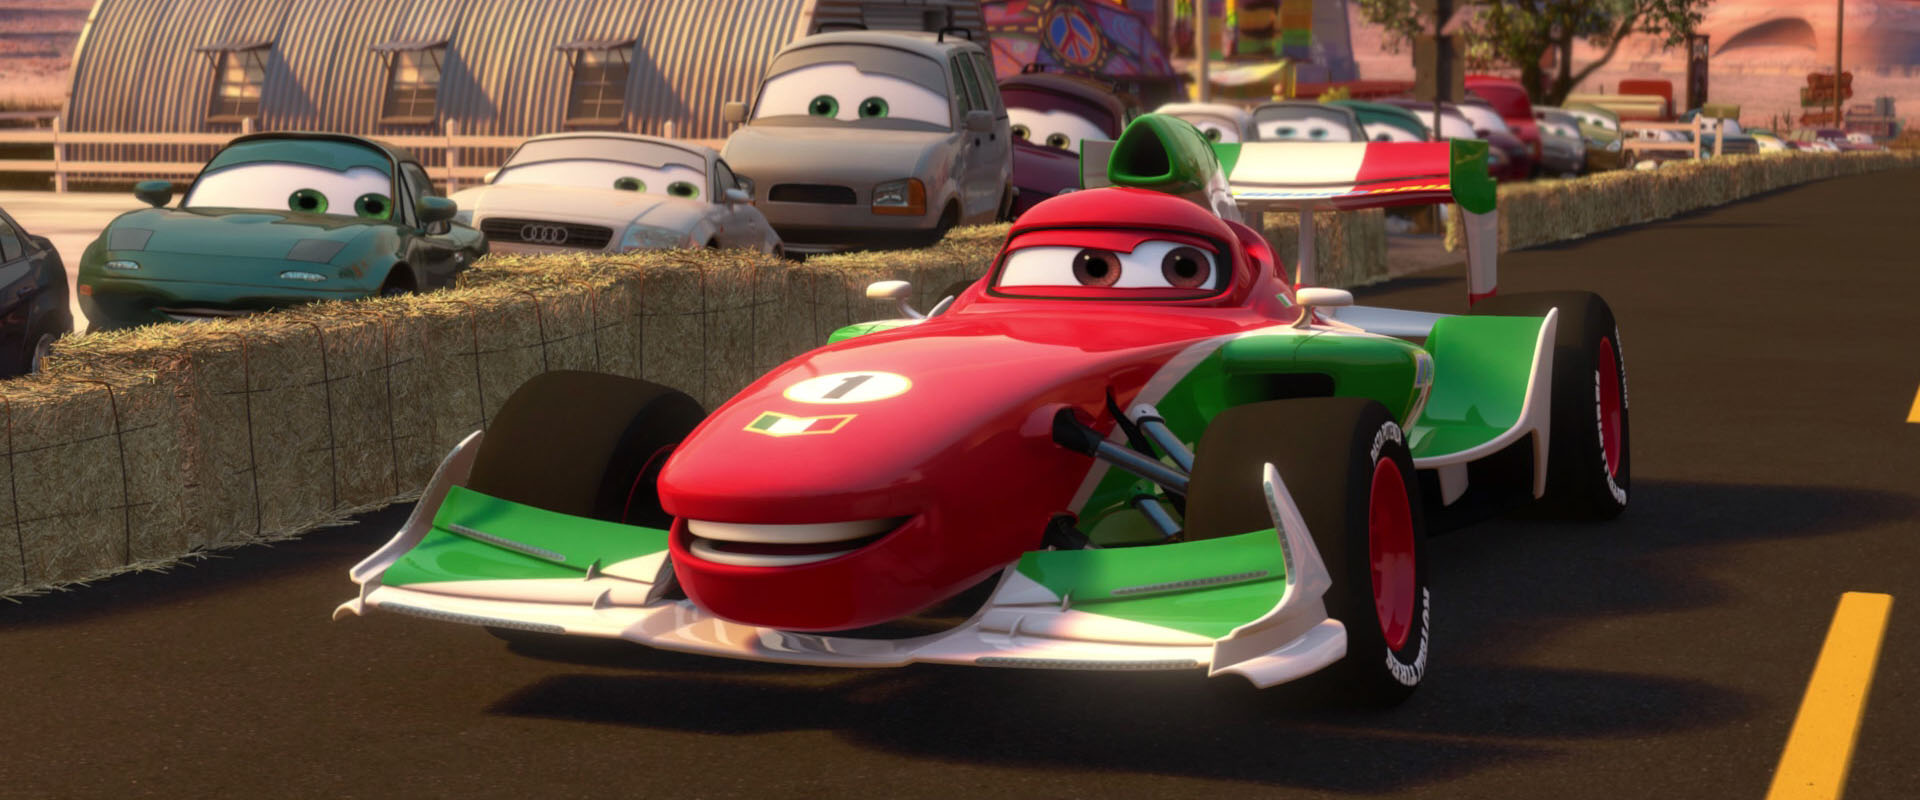 francesco-bernoulli-personnage-cars-2-005